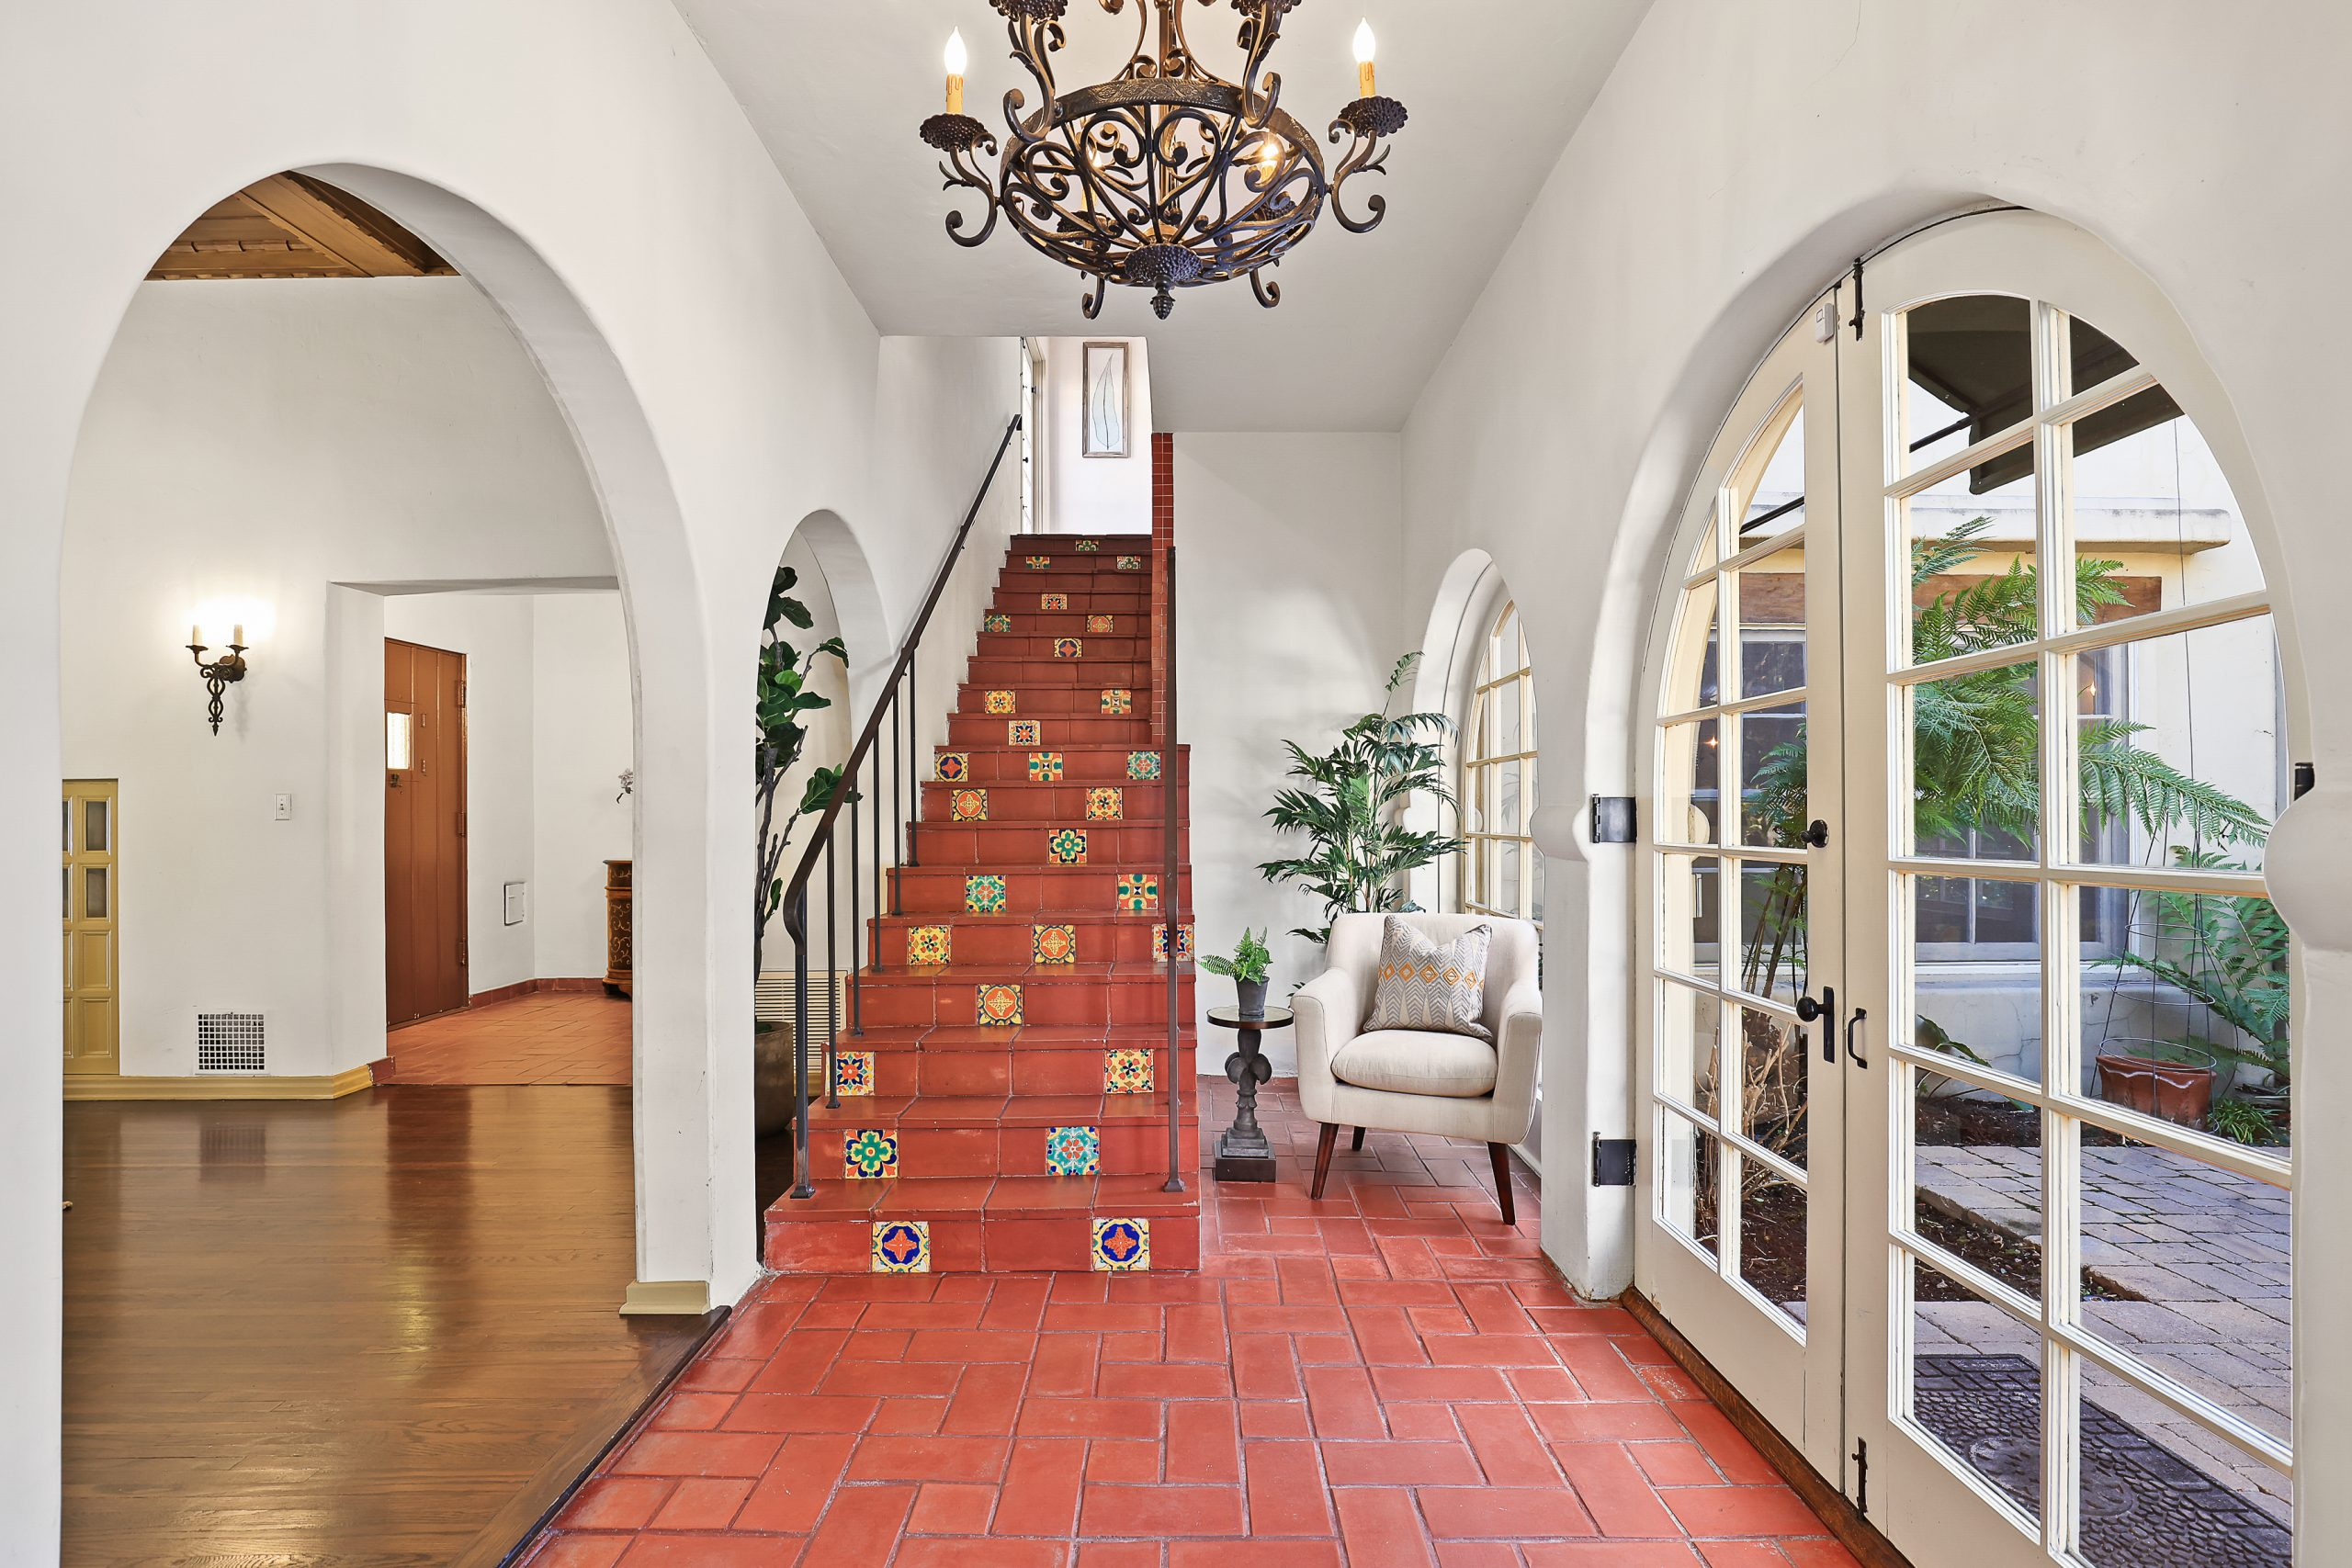 Spanish Revival Home Staging Original Tile